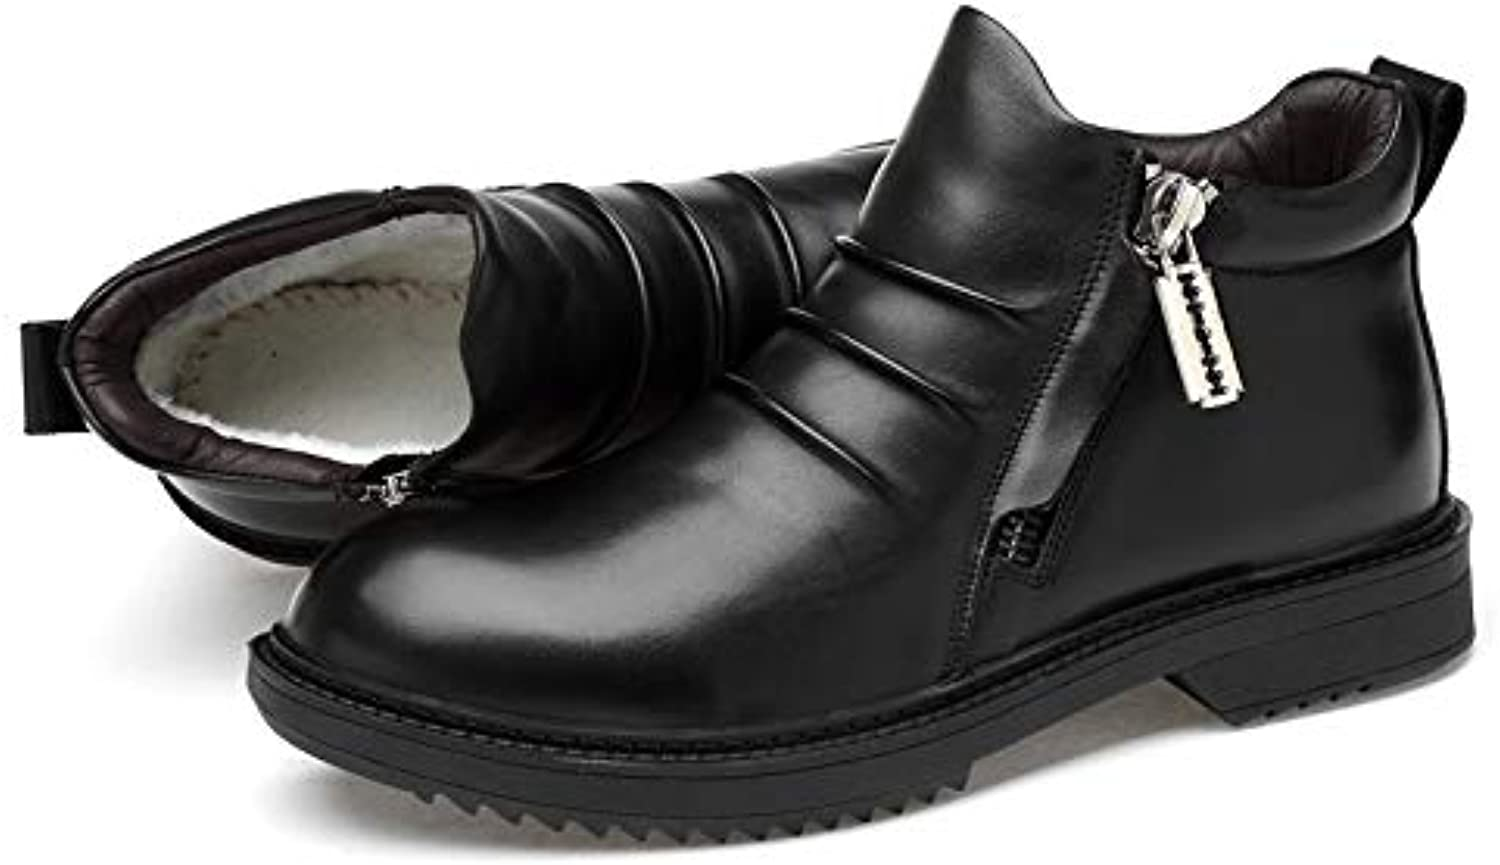 Men's Leather Boots Winter High-Top Shock Absorption shoes Wear-Resistant Keep Warm Outdoor Loafers Driving shoes,B,42